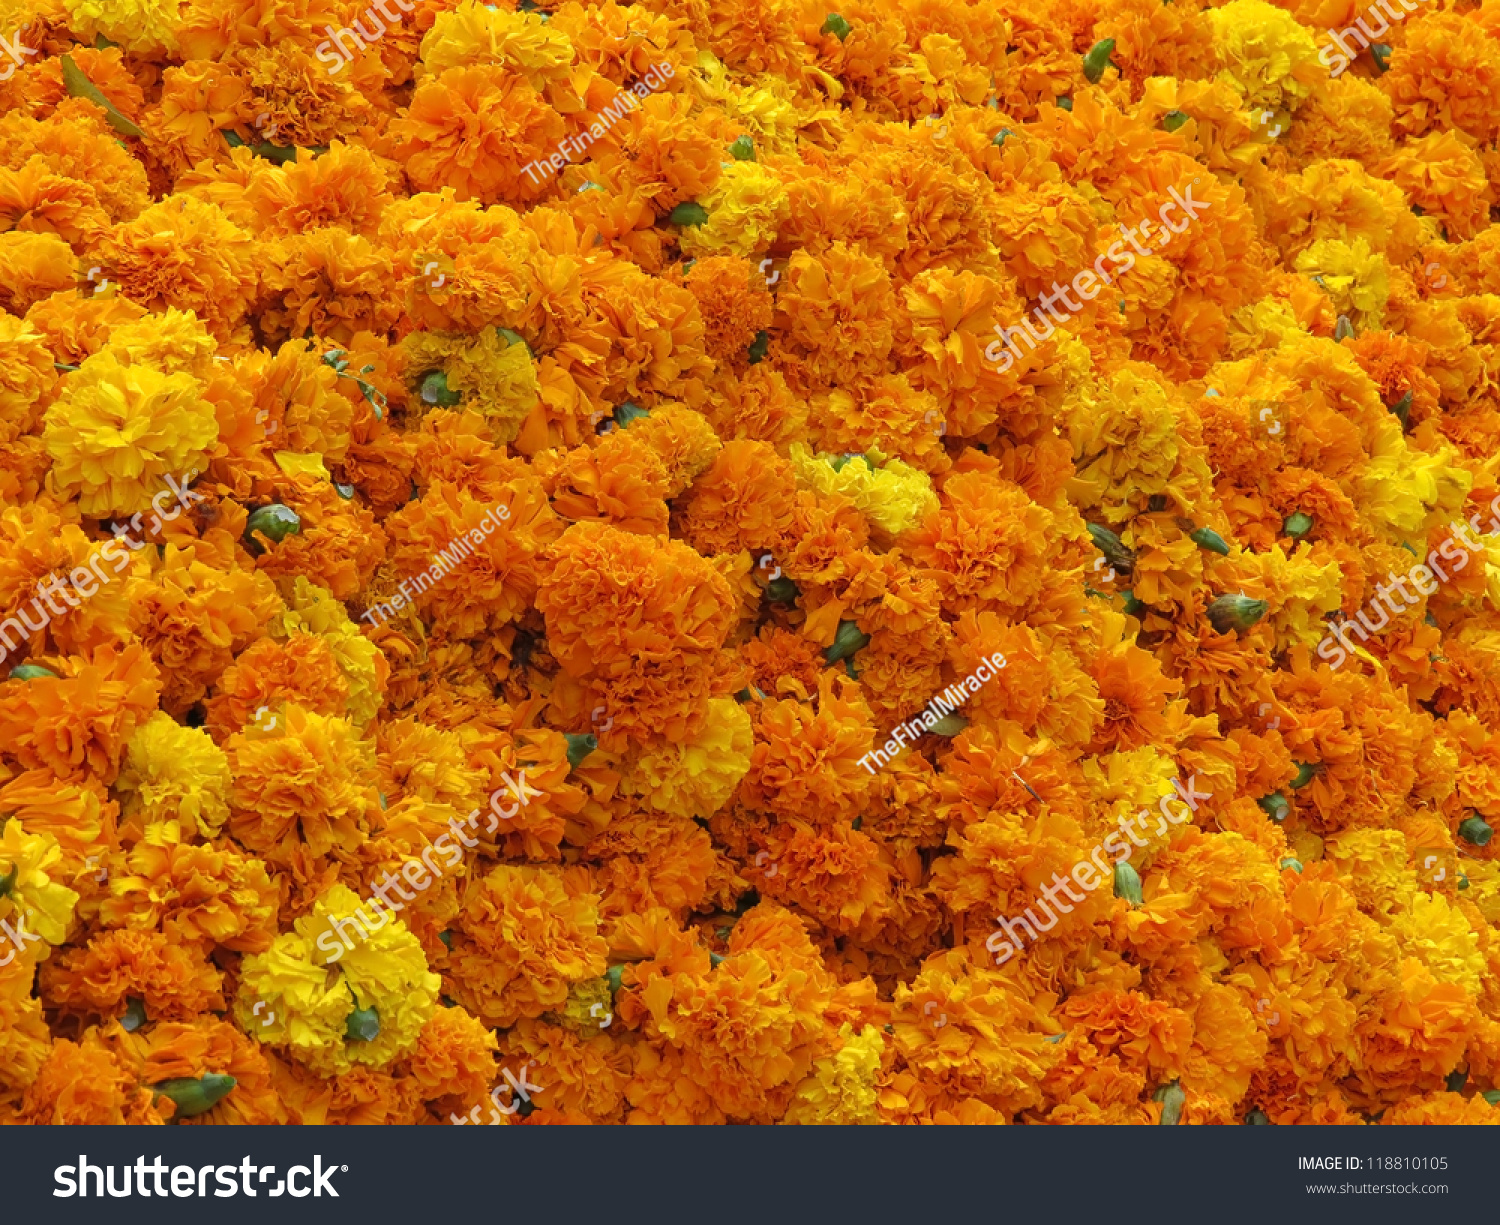 A Background Of Bright Colored Marigold Flowers In Yellow And Orange